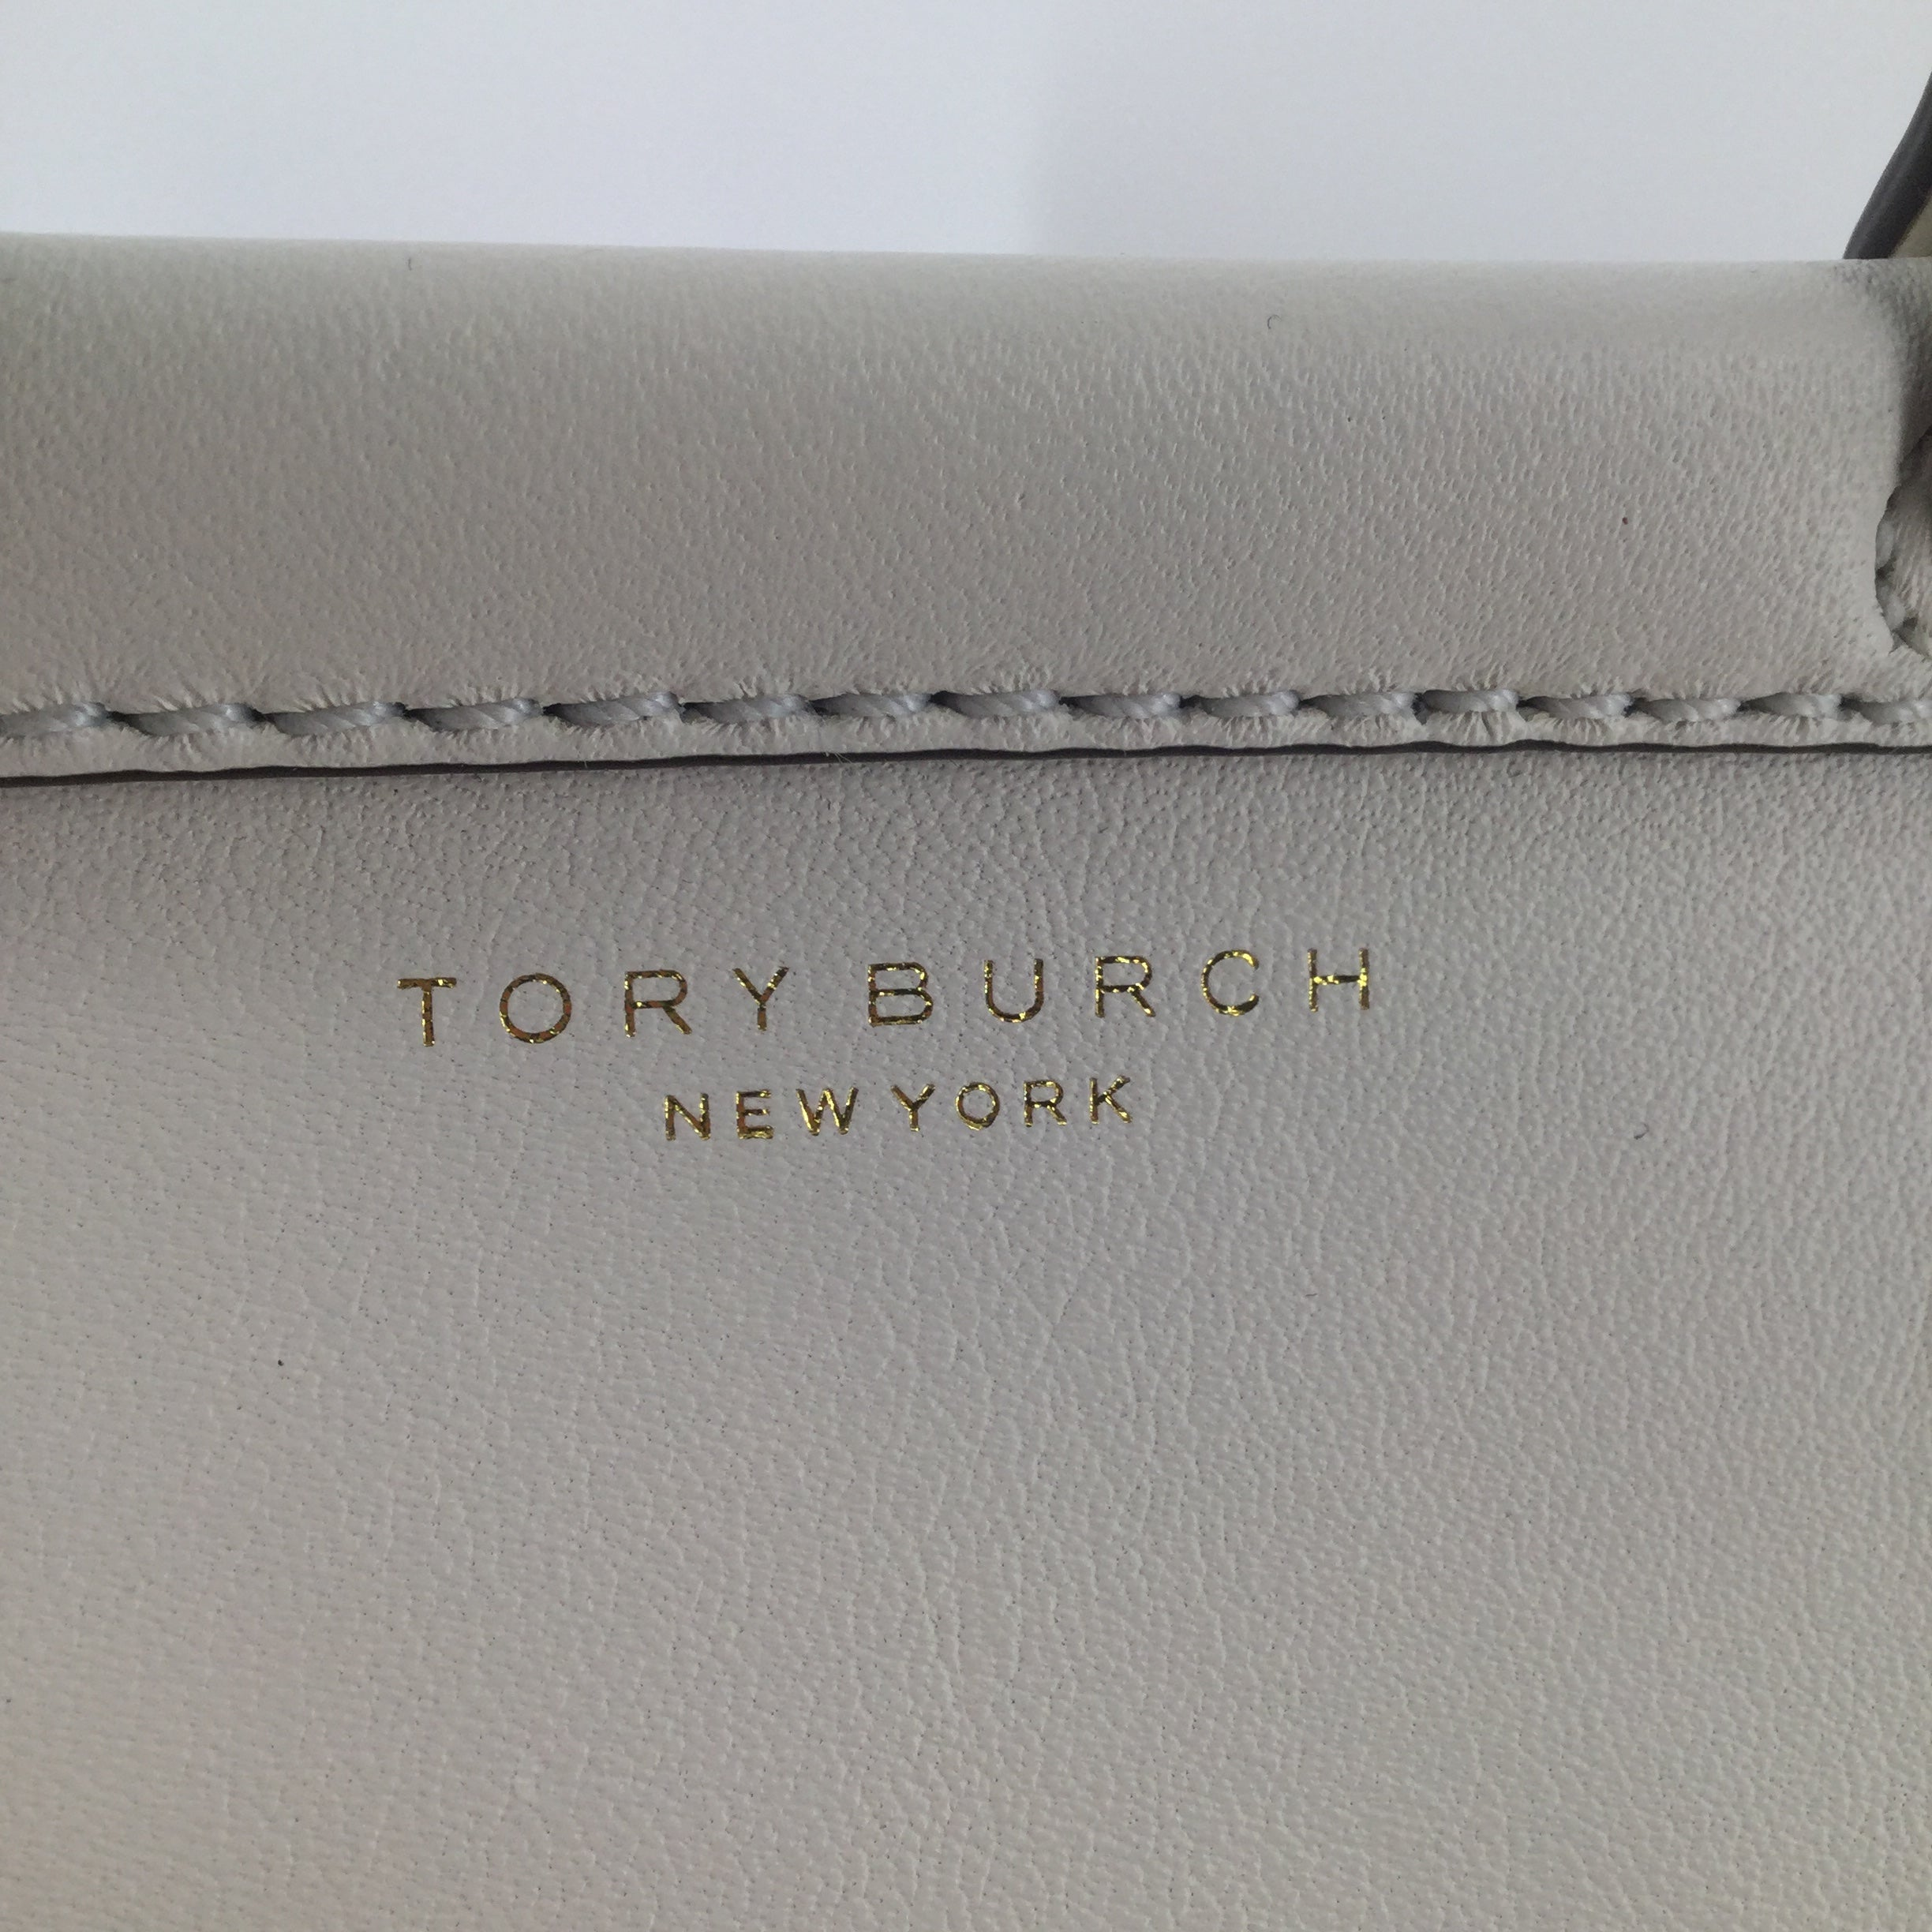 TORY BURCH NWT HANDBAG